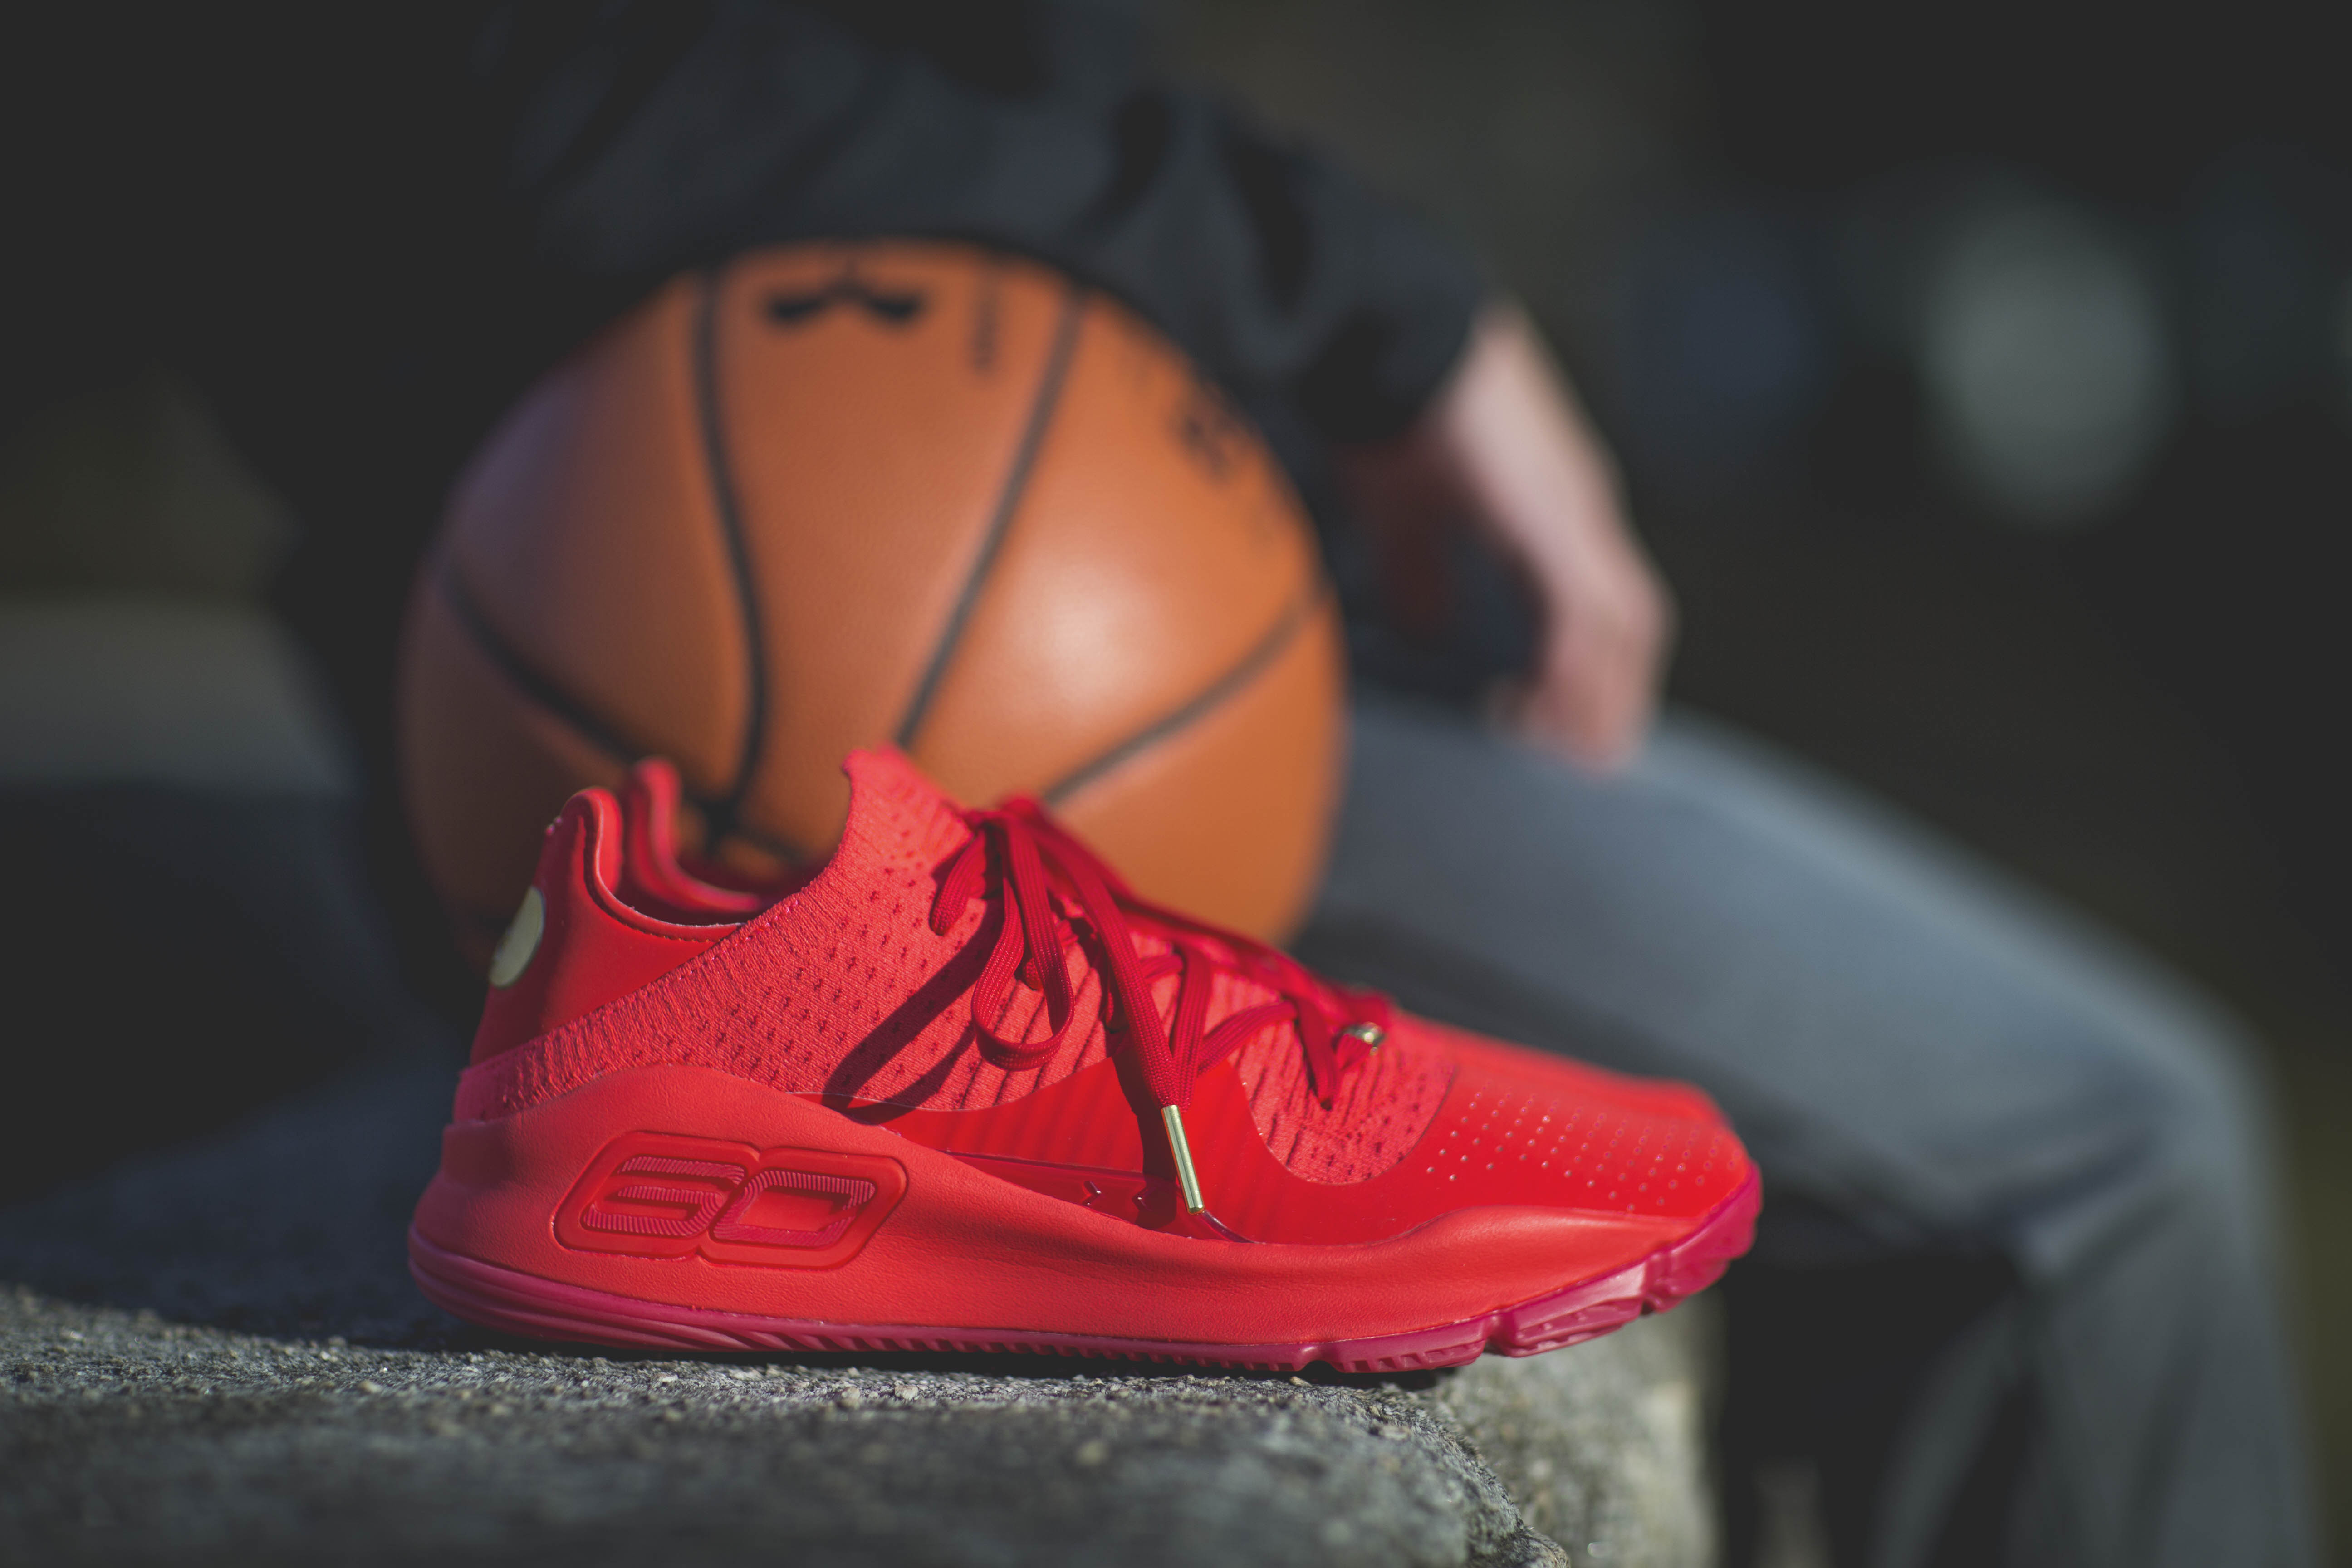 Under Armour Curry 4 Low 'Red'